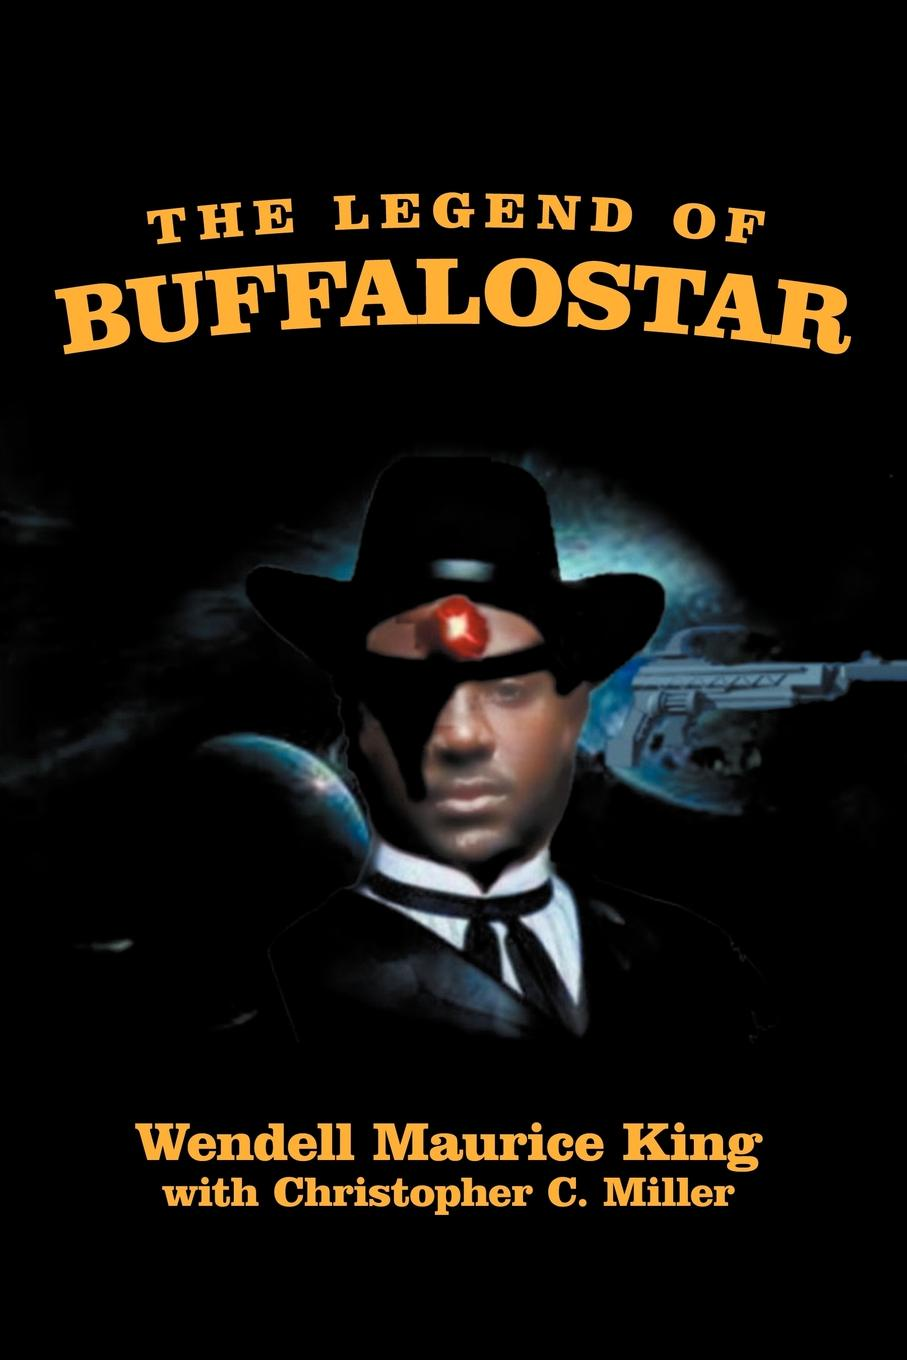 Wendell Maurice King The Legend of Buffalostar. The Man with Three Faces three man 4